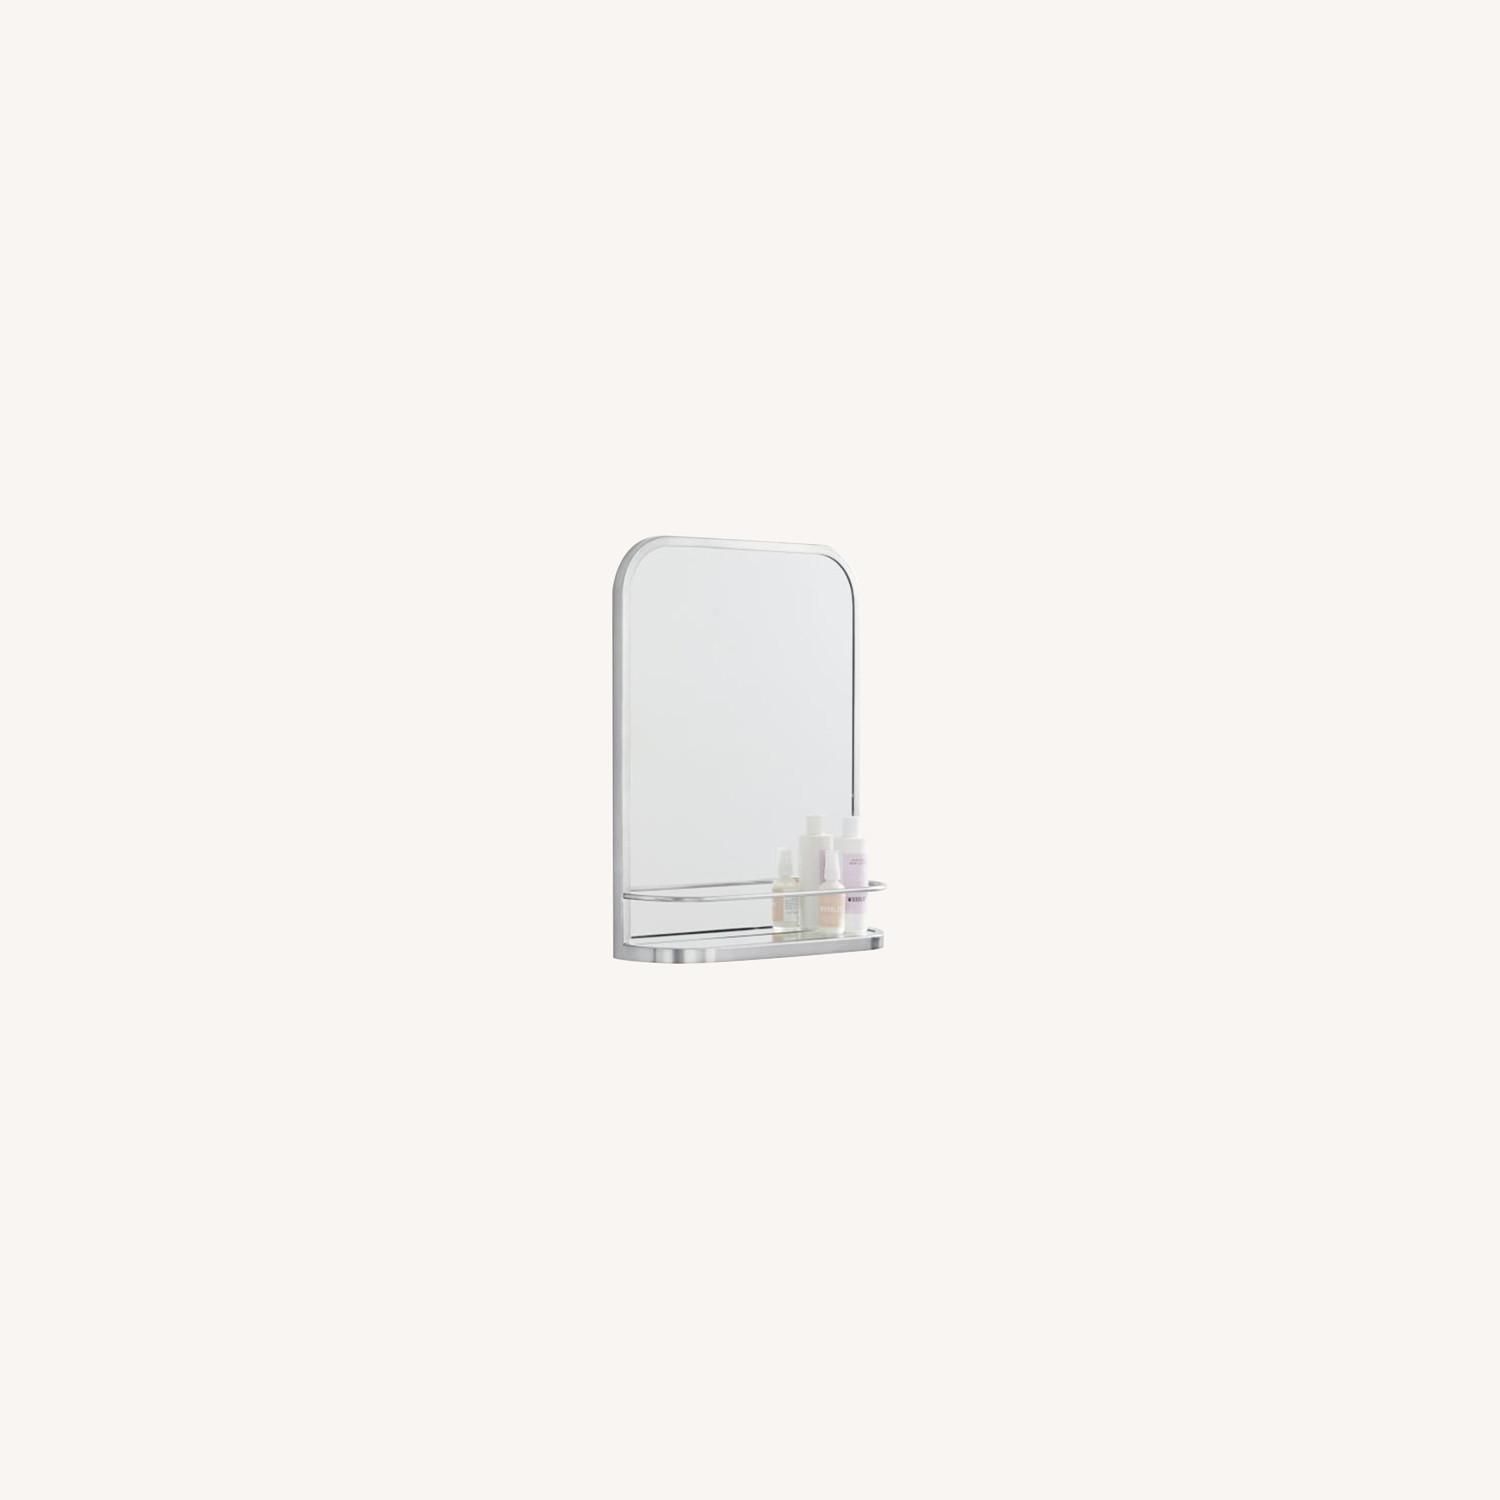 West Elm Seamless Mirror with Shelf, Chrome - image-0